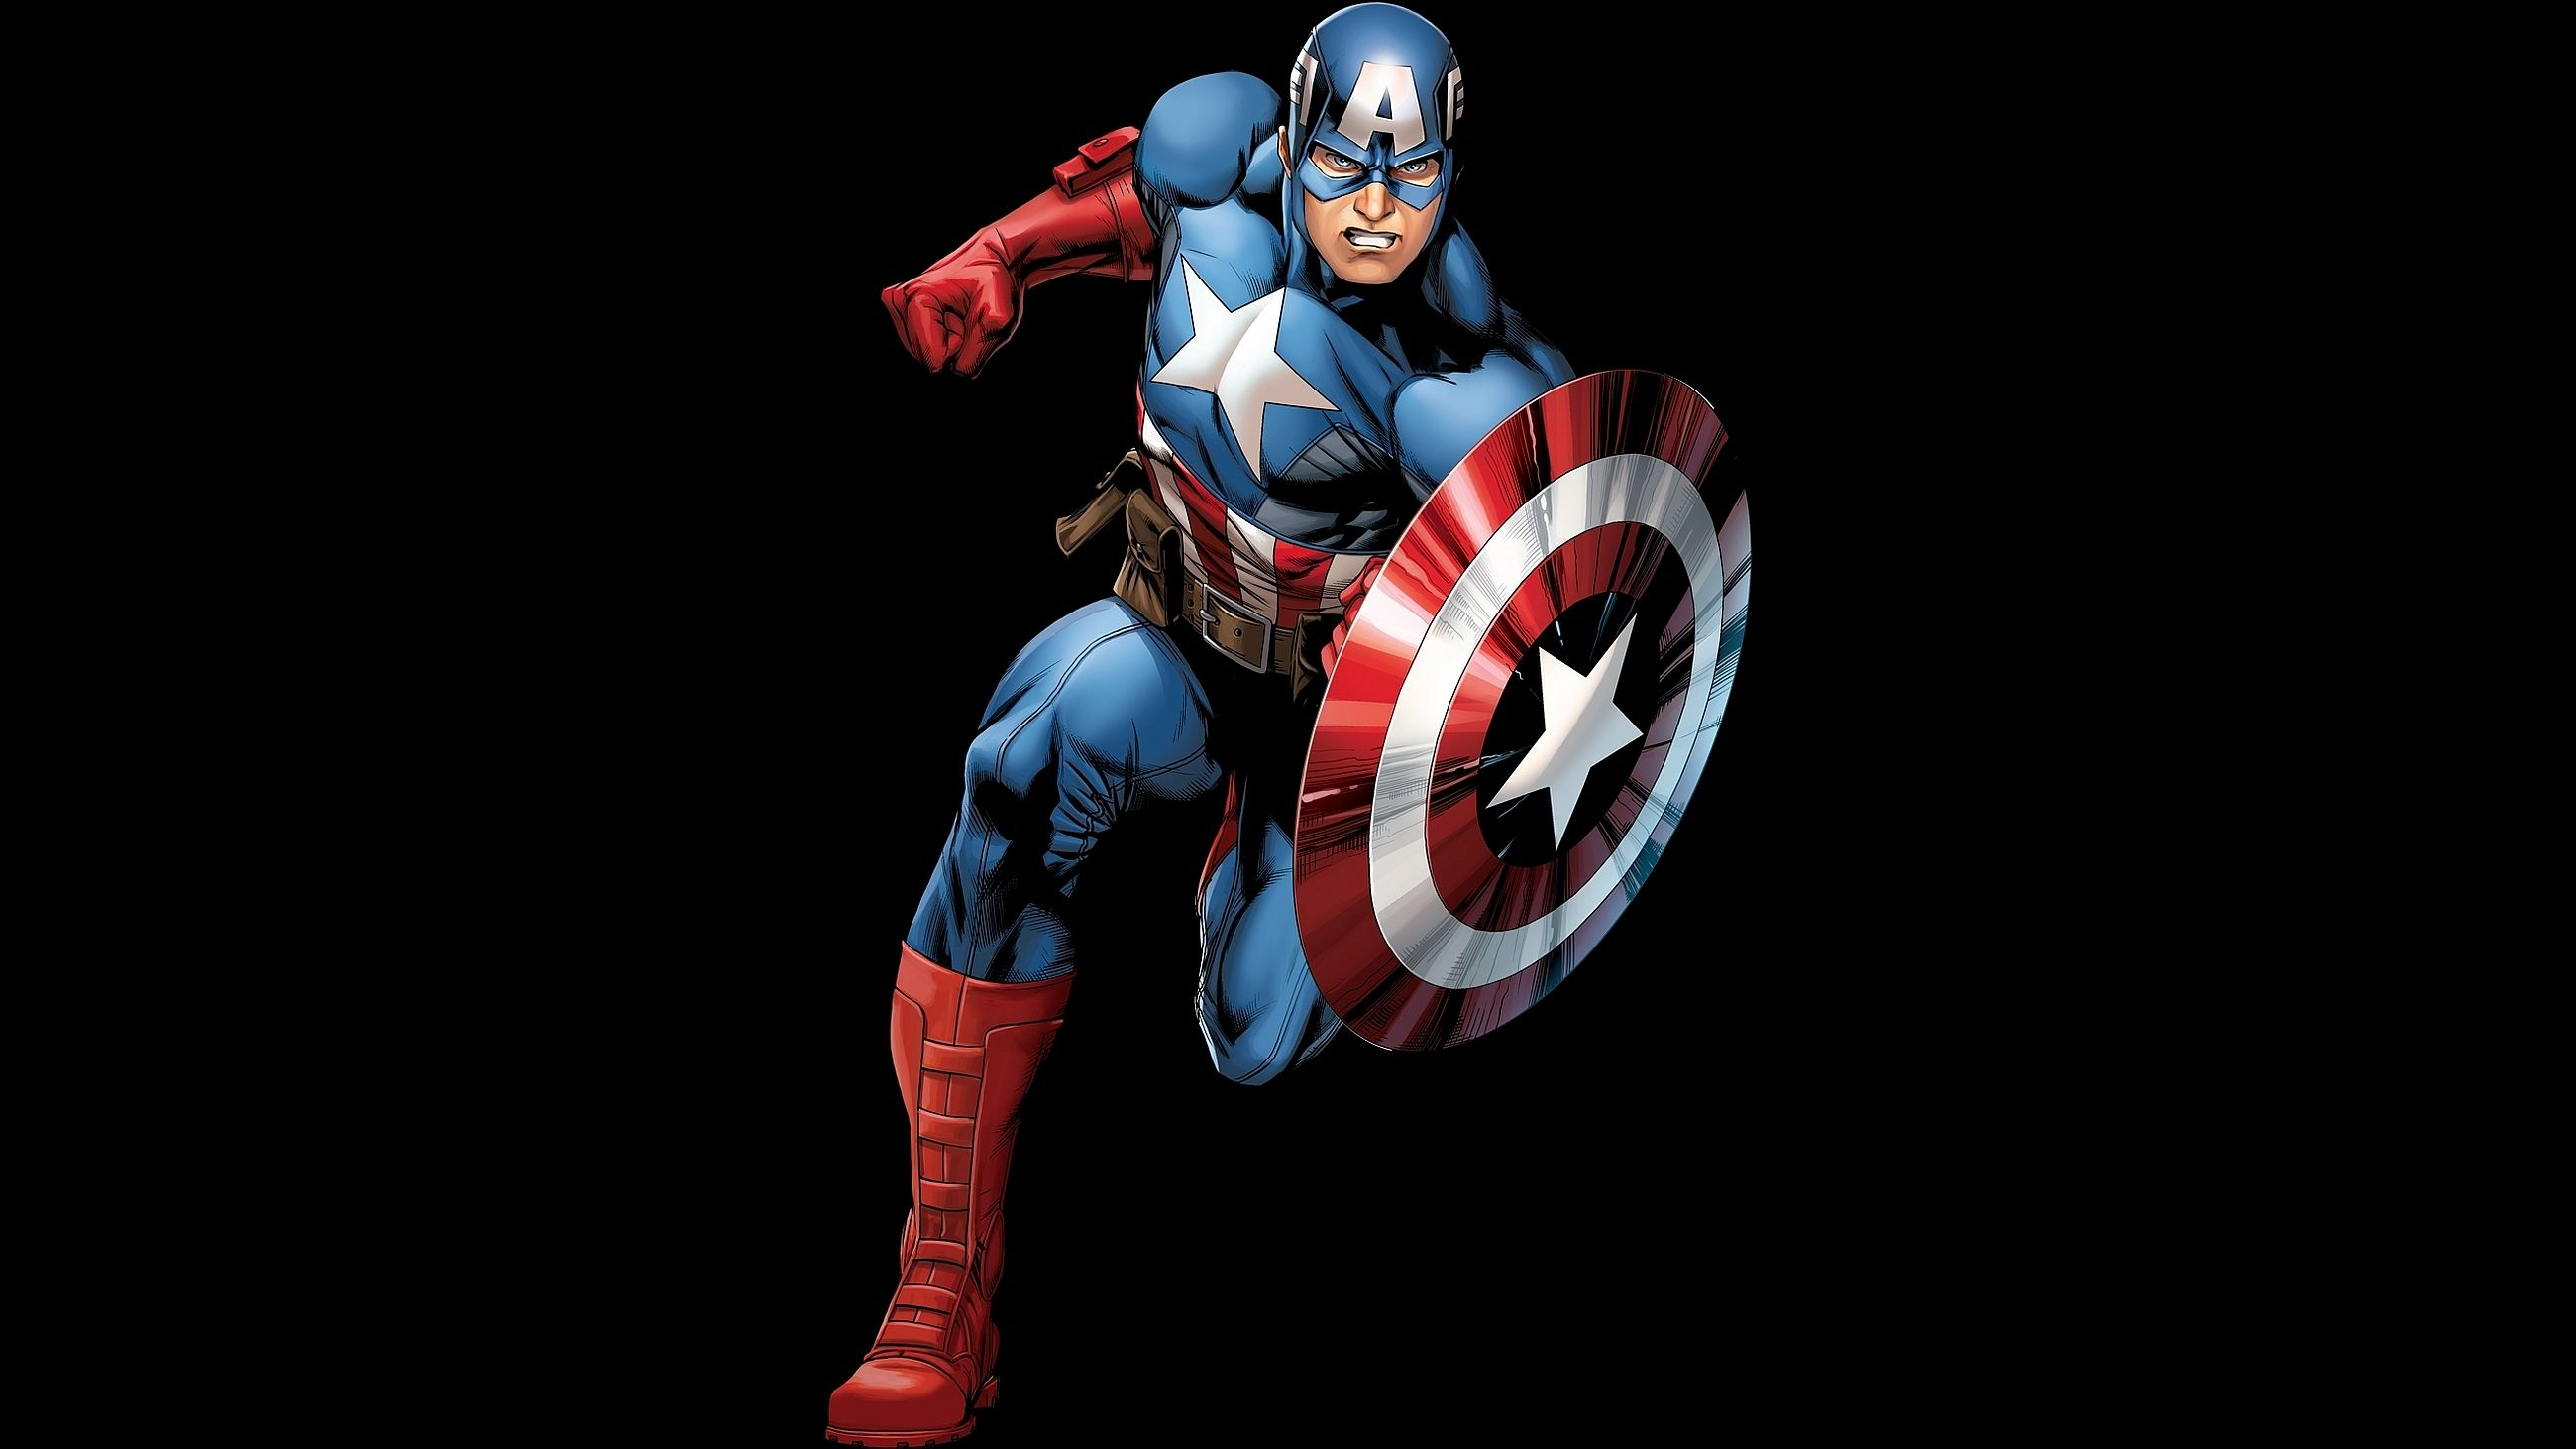 Captain America HD Wallpapers Backgrounds Wallpaper HD